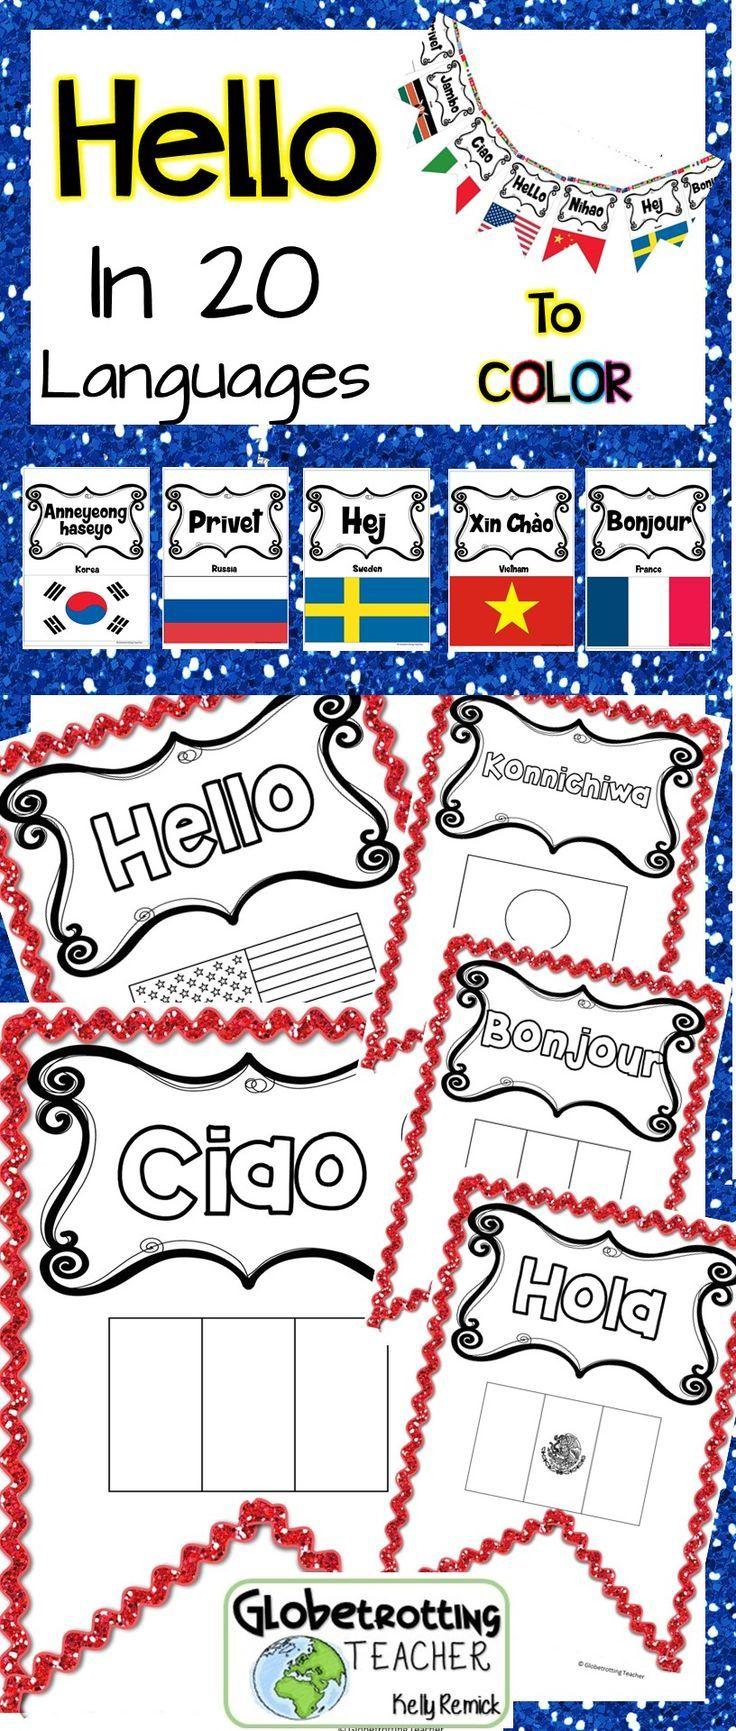 This gorgeous international bulletin board can be on your wall (or door or ceiling) in no time. Students use the key to discover the country name and then they color the flag.  Welcome your international students and parents! All the thinking, planning, coordinating and measuring has been done for you. Just print, cut and pin up. Presto! An amazing, colorful pennant that looks like you spent many hours creating!